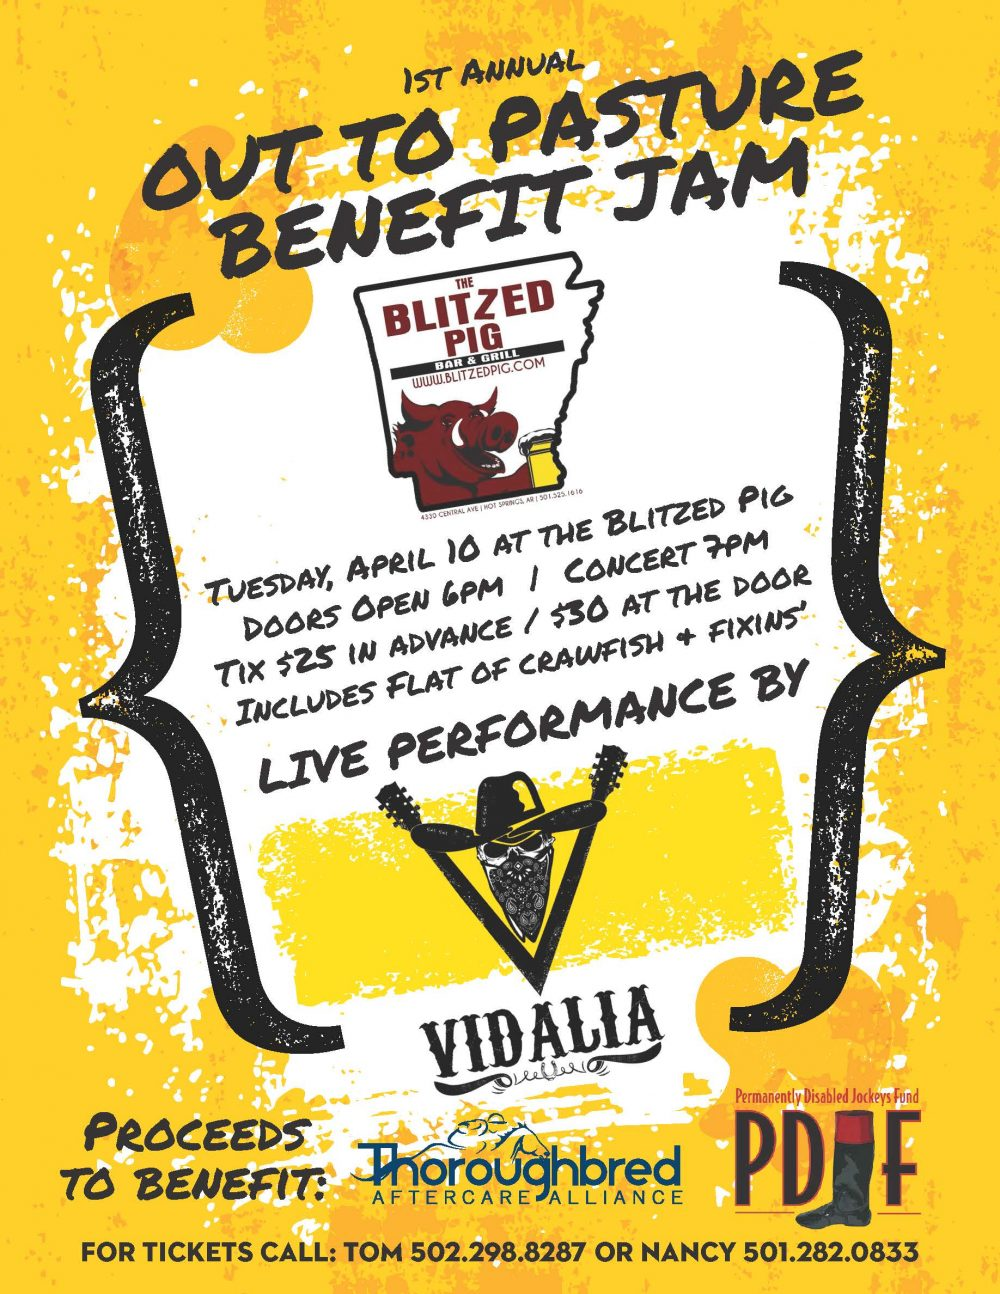 Out to Pasture Benefit Jam flyer